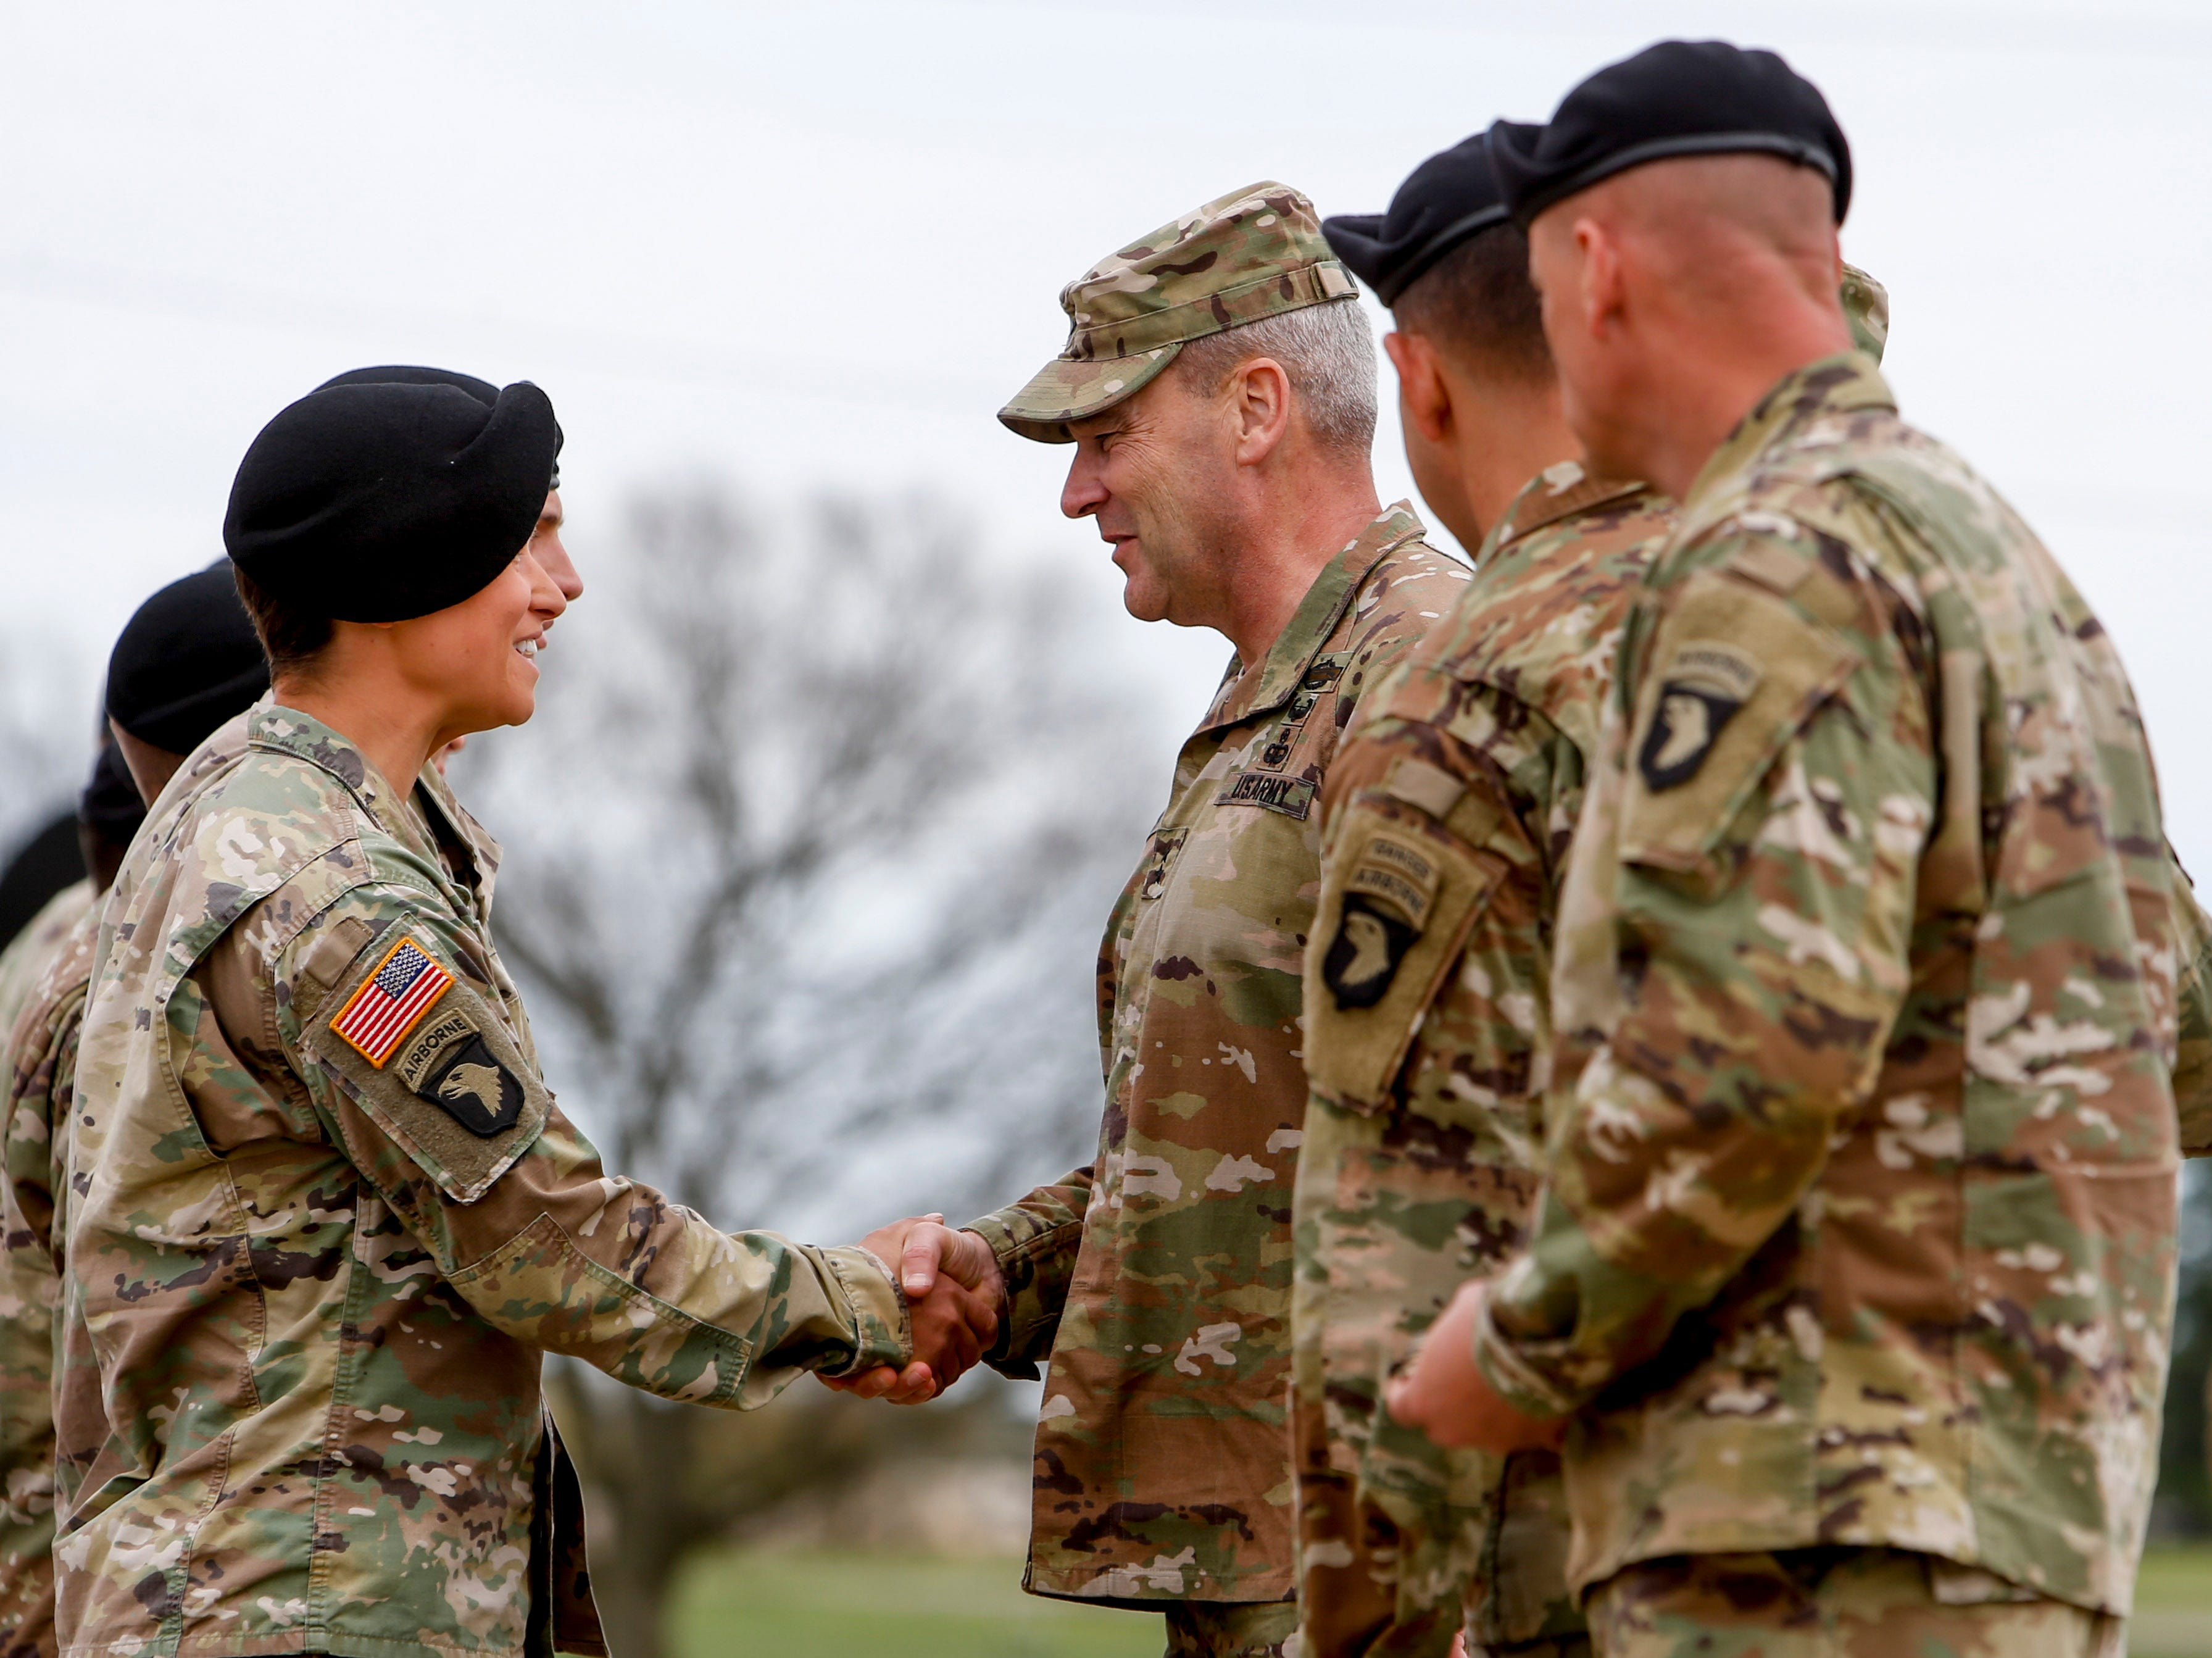 Commander of division Maj. Gen. Brian Winski shakes the hands of soldiers that completed Ranger school during a colors casing ceremony prior to deployment for Ukraine at 2 BCT Headquarters in Fort Campbell, KY., on Friday, April 12, 2019.